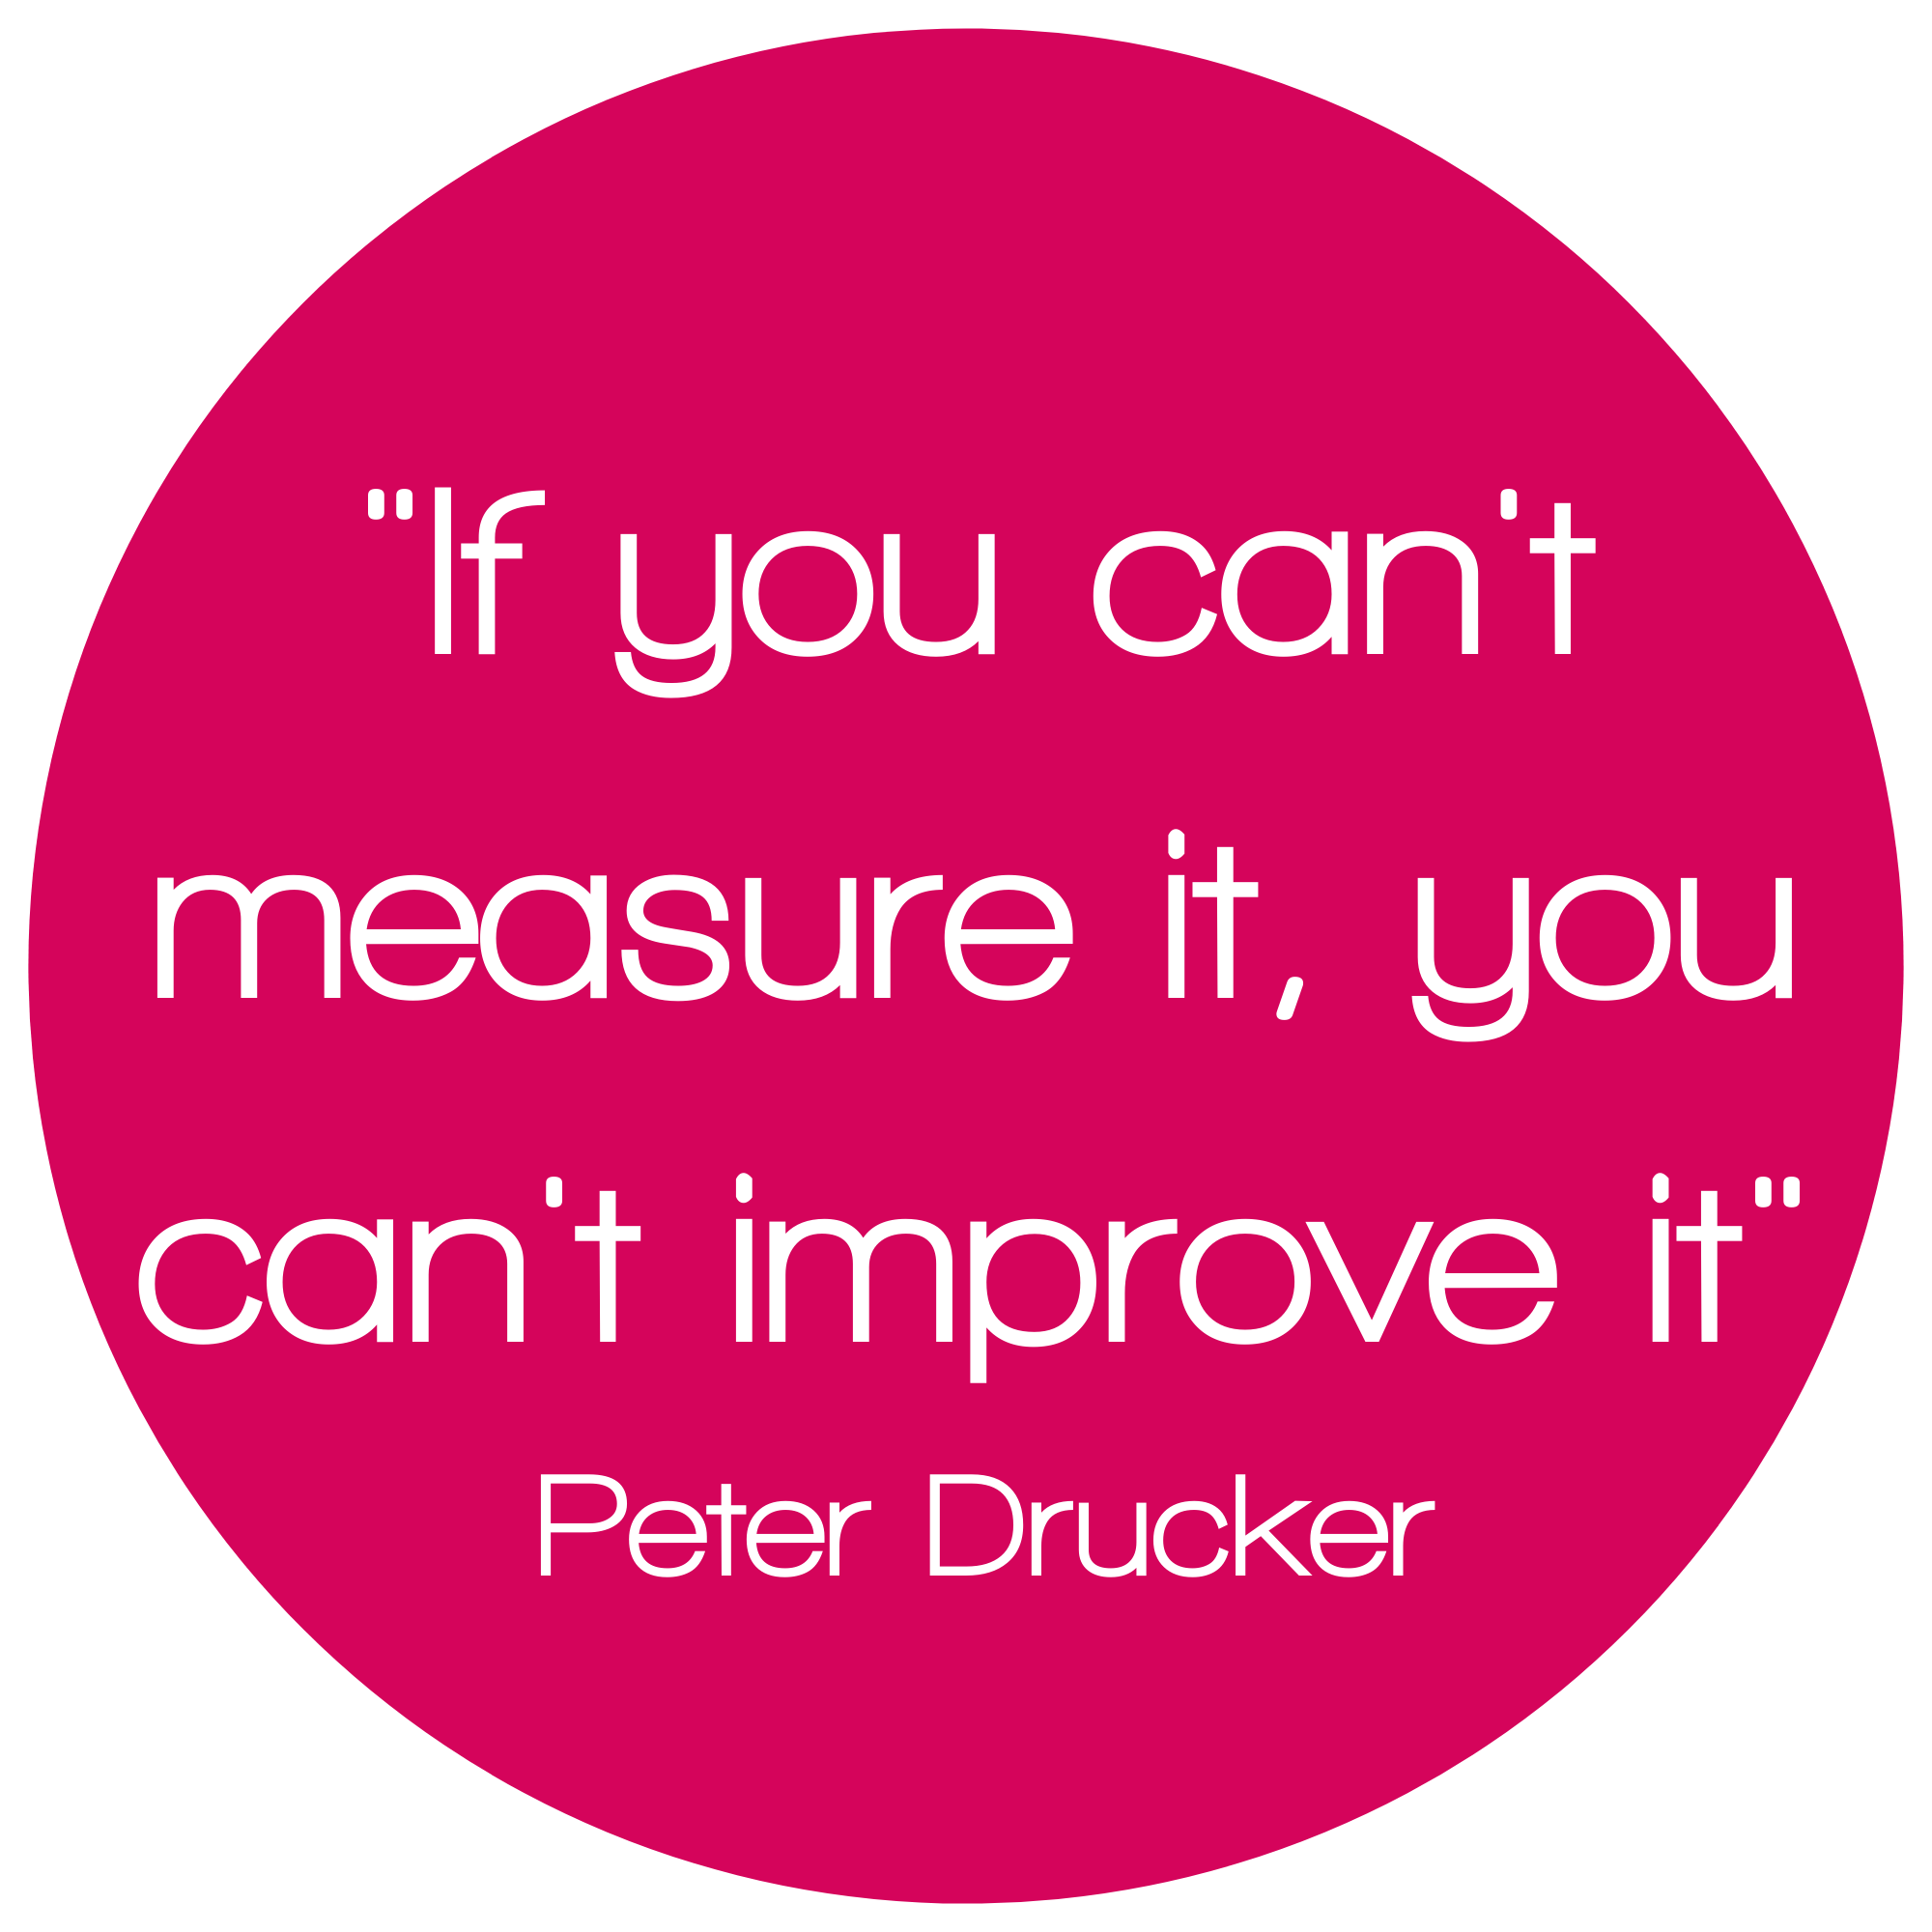 If you can't measure it, you can't improve it